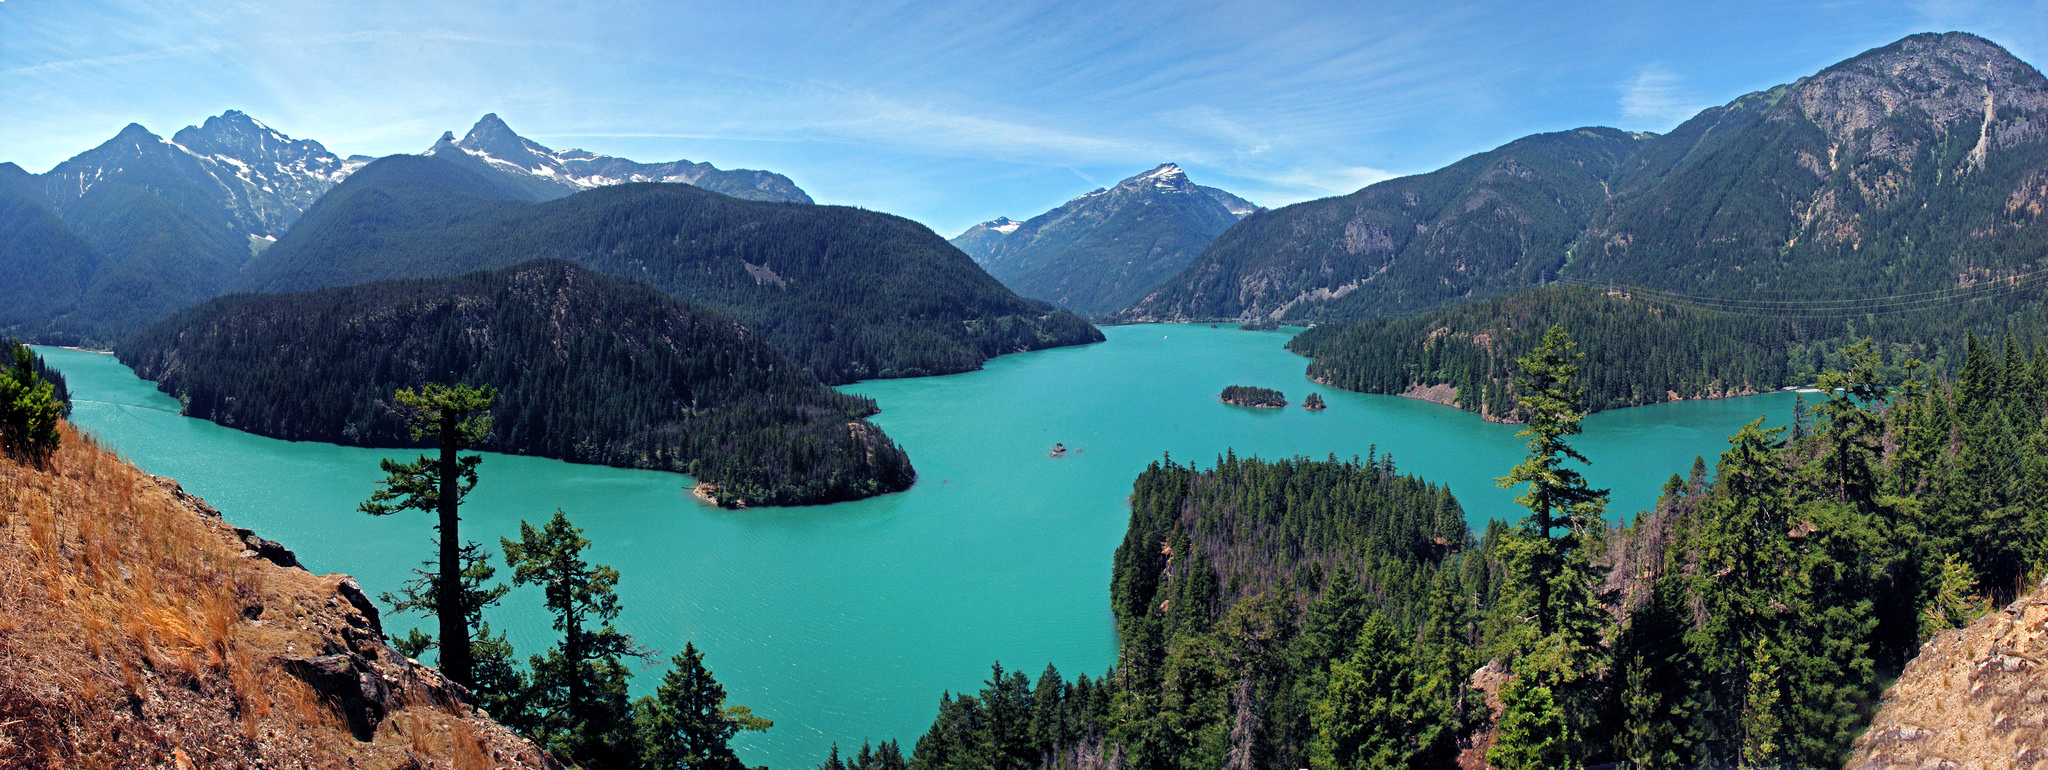 The Lodge Sits On the Edge of Lake Diablo / Photo Courtesy of North Cascades Institute